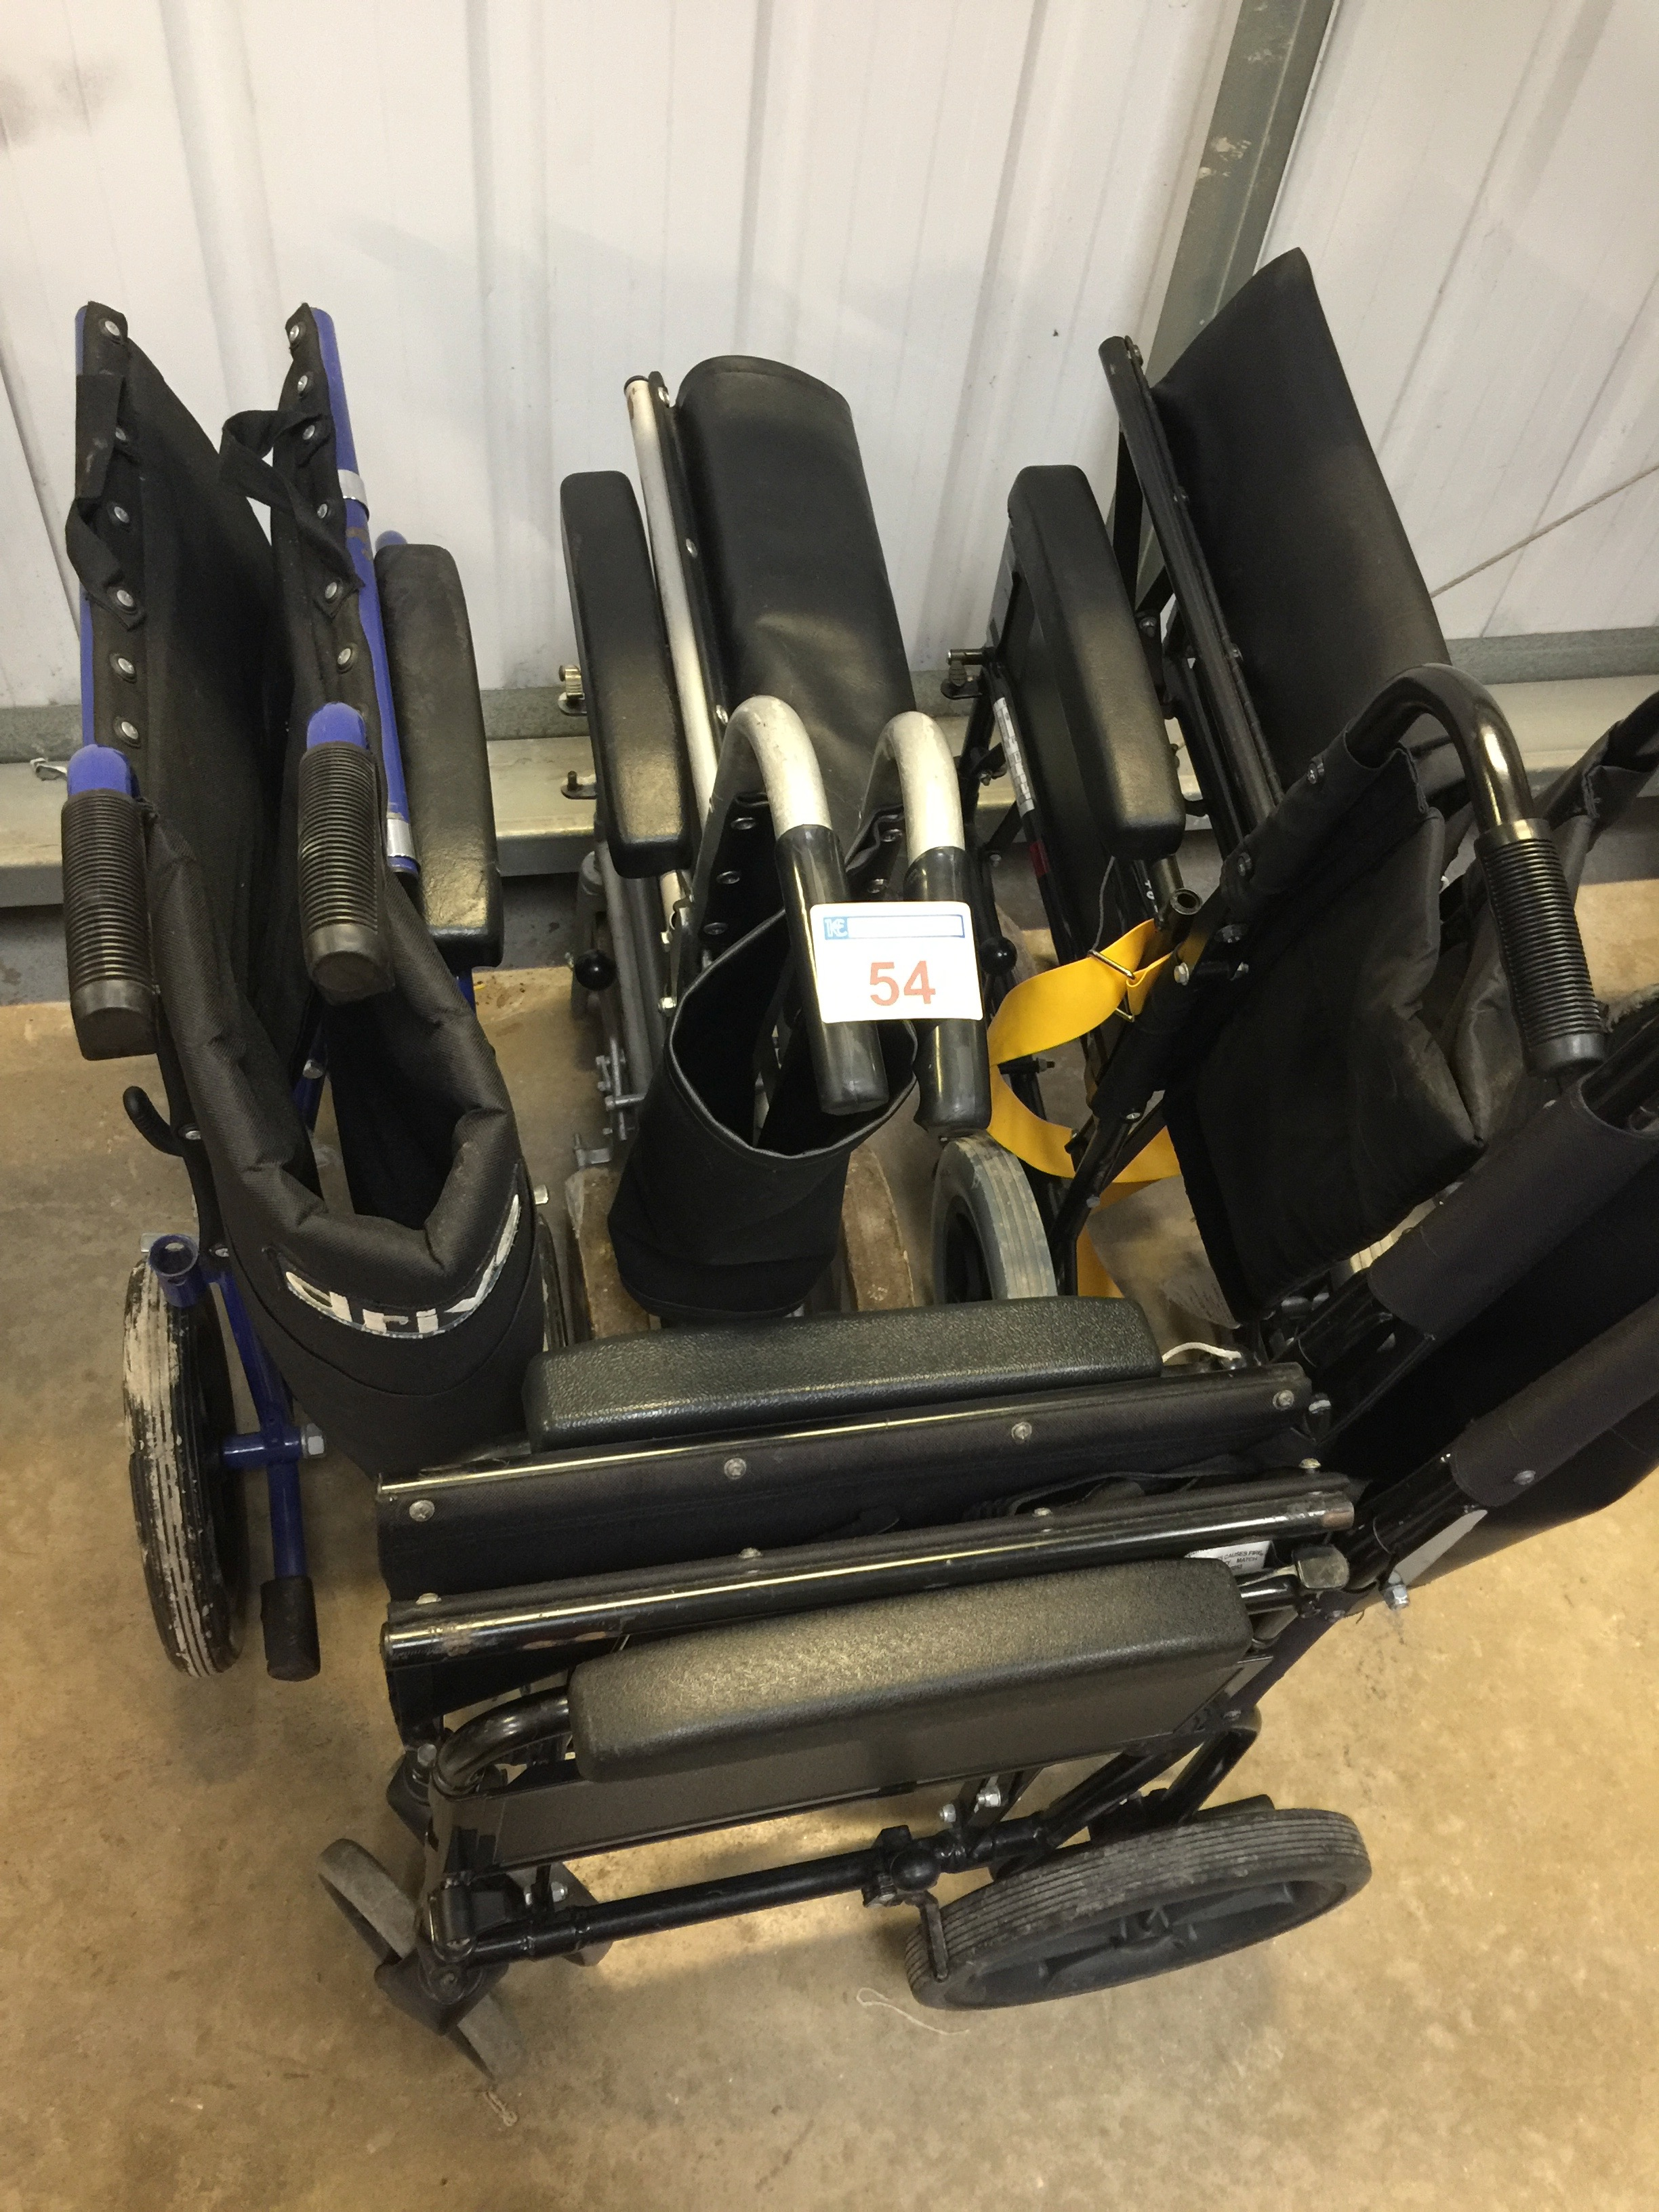 Lot 54 - 4 folding transit wheelchairs